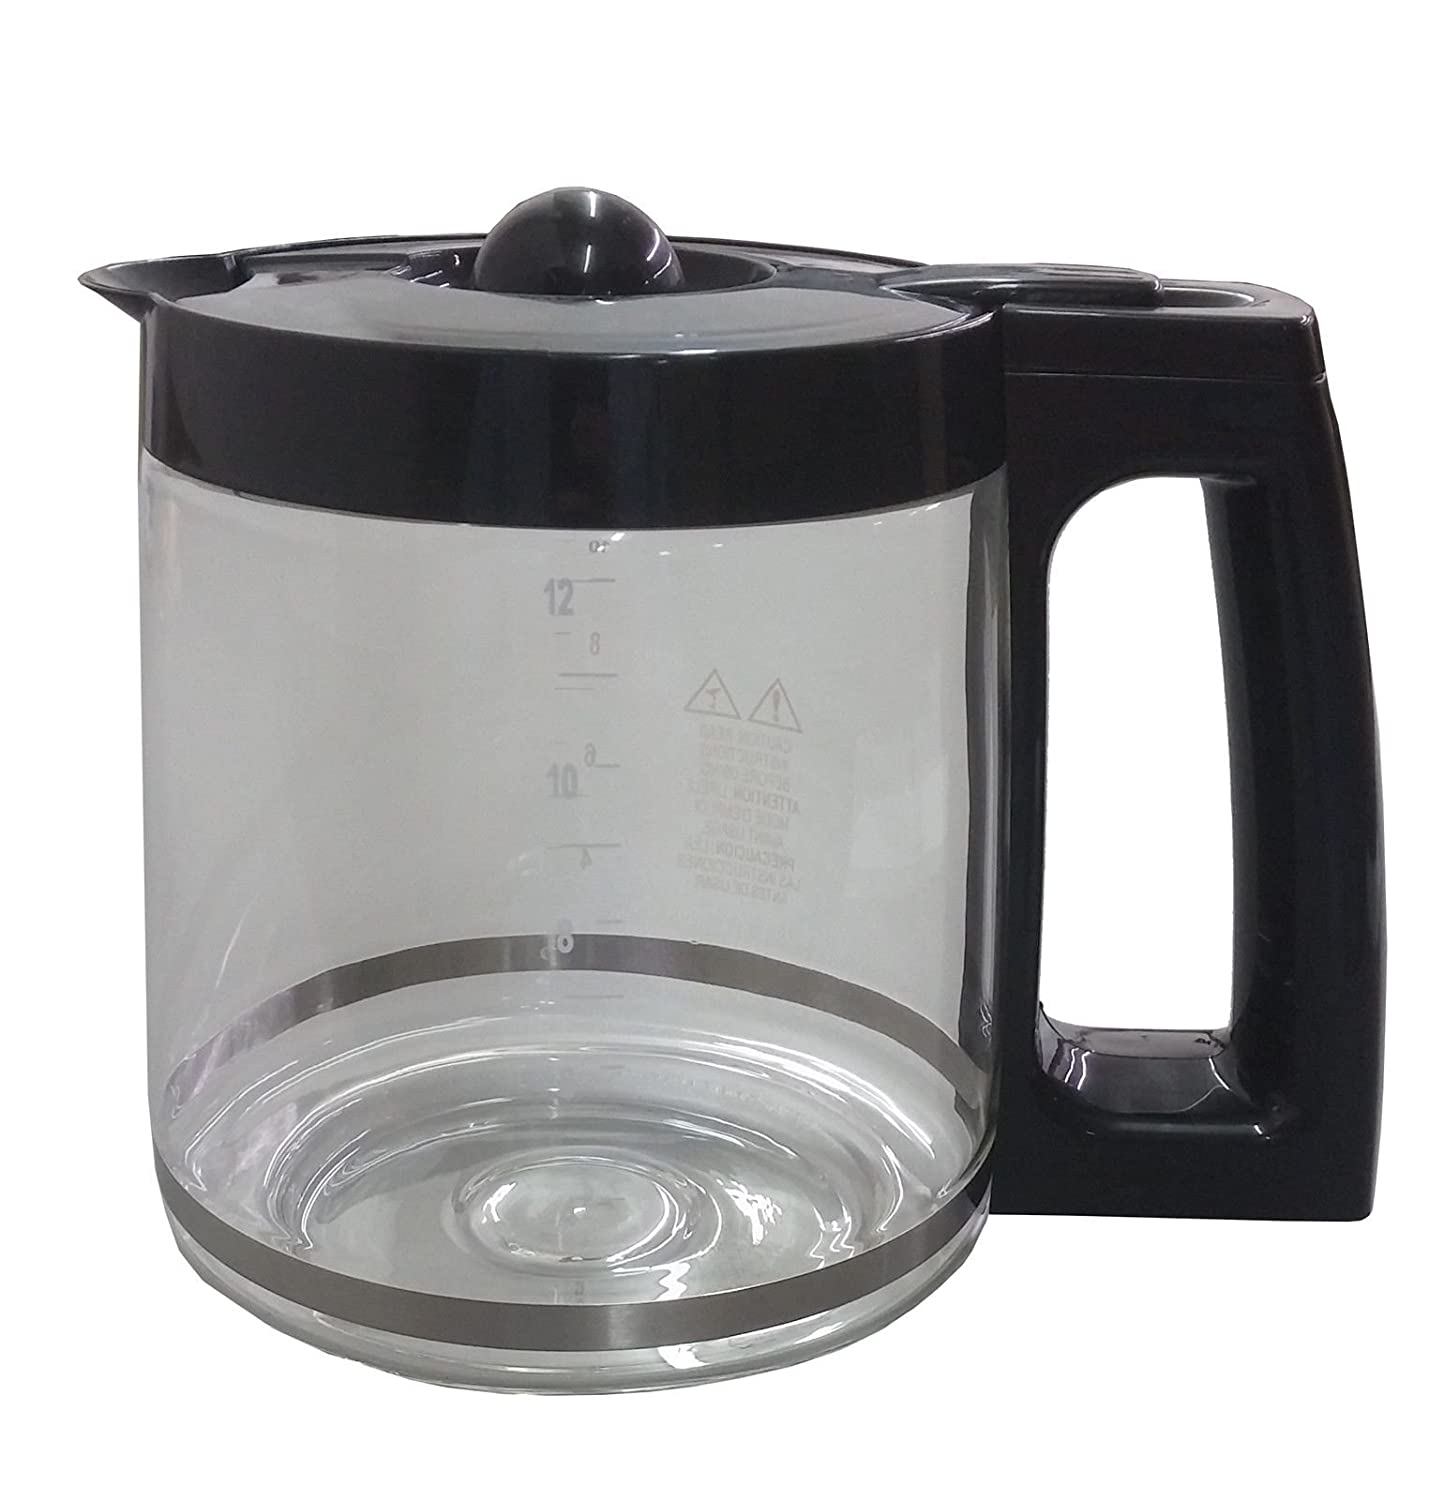 KHY Replacement 12 Cup Capacity Carafe FlexBrew Two Way Coffeemaker FOR Hamilton Beach 49983 49976 49980